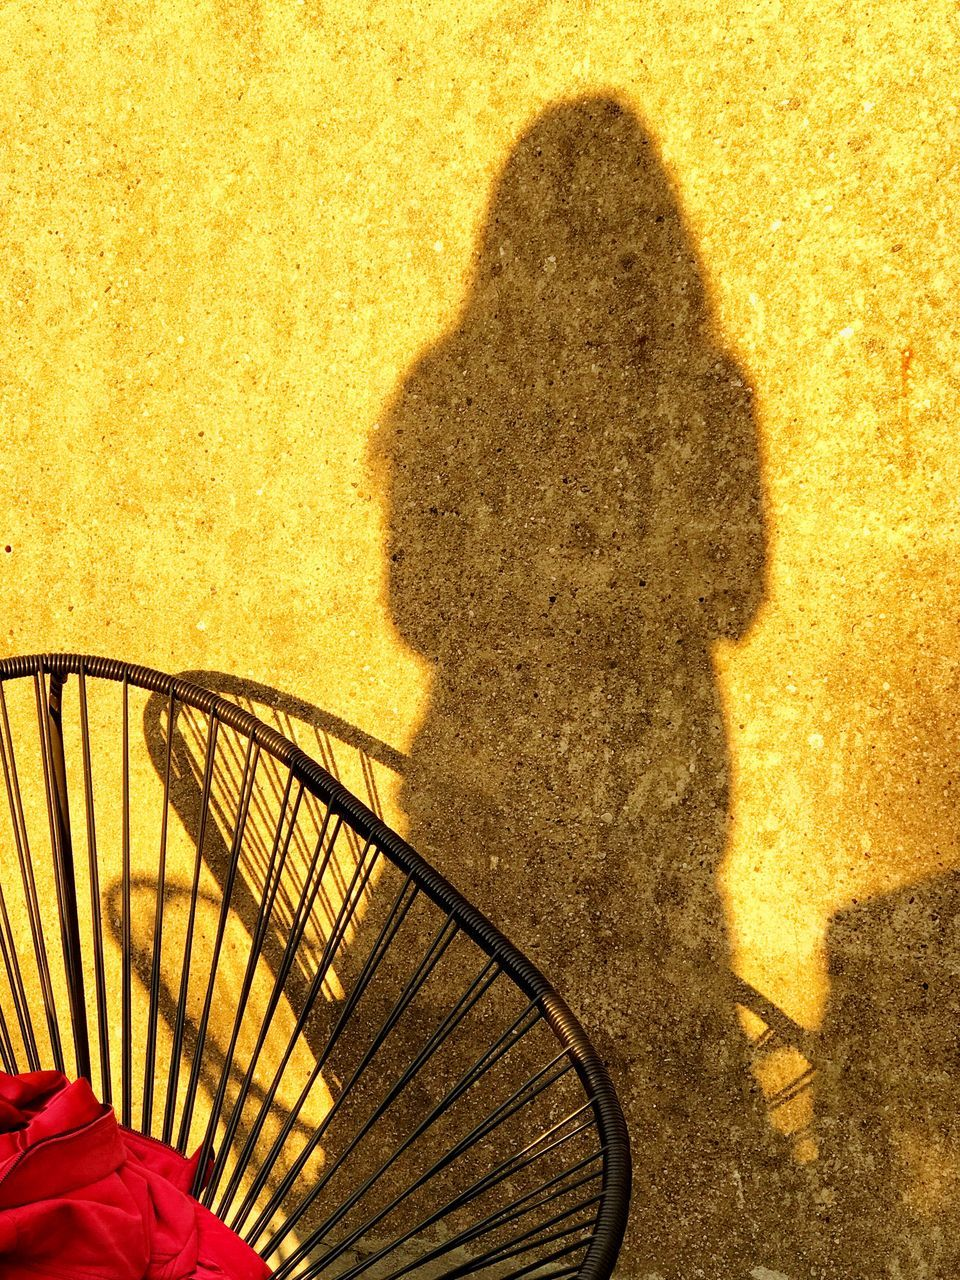 shadow, sunlight, one person, real people, outdoors, day, low section, people